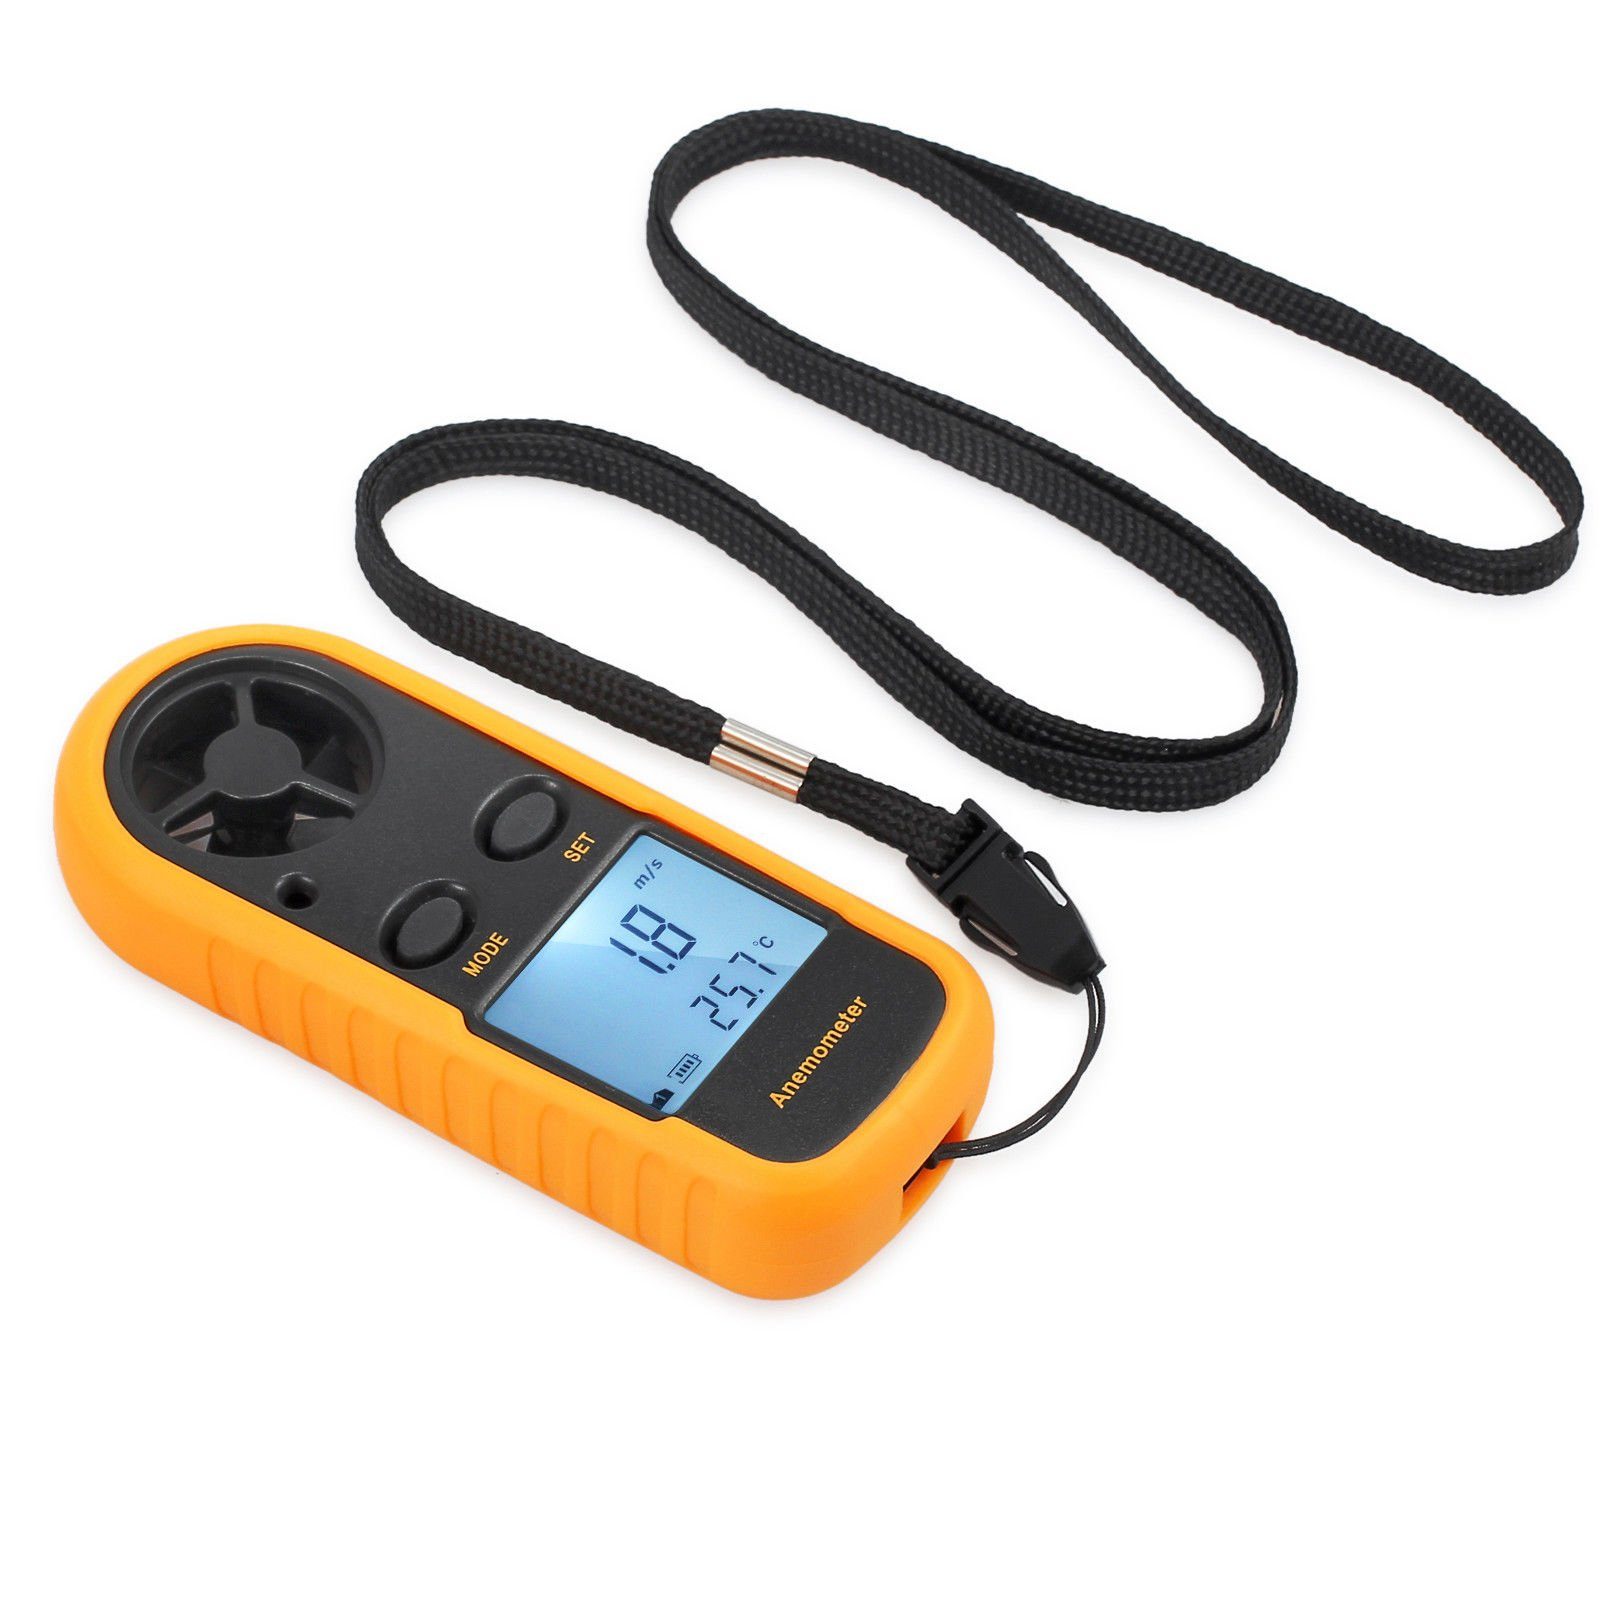 AUTOUTLET Digital Anemometer Handheld LCD Wind Speed Meter Gauge Air Flow Velocity Measurement Thermometer with Backlight for Sailing, Surfing, Hand-gliding, Shooting and Walking